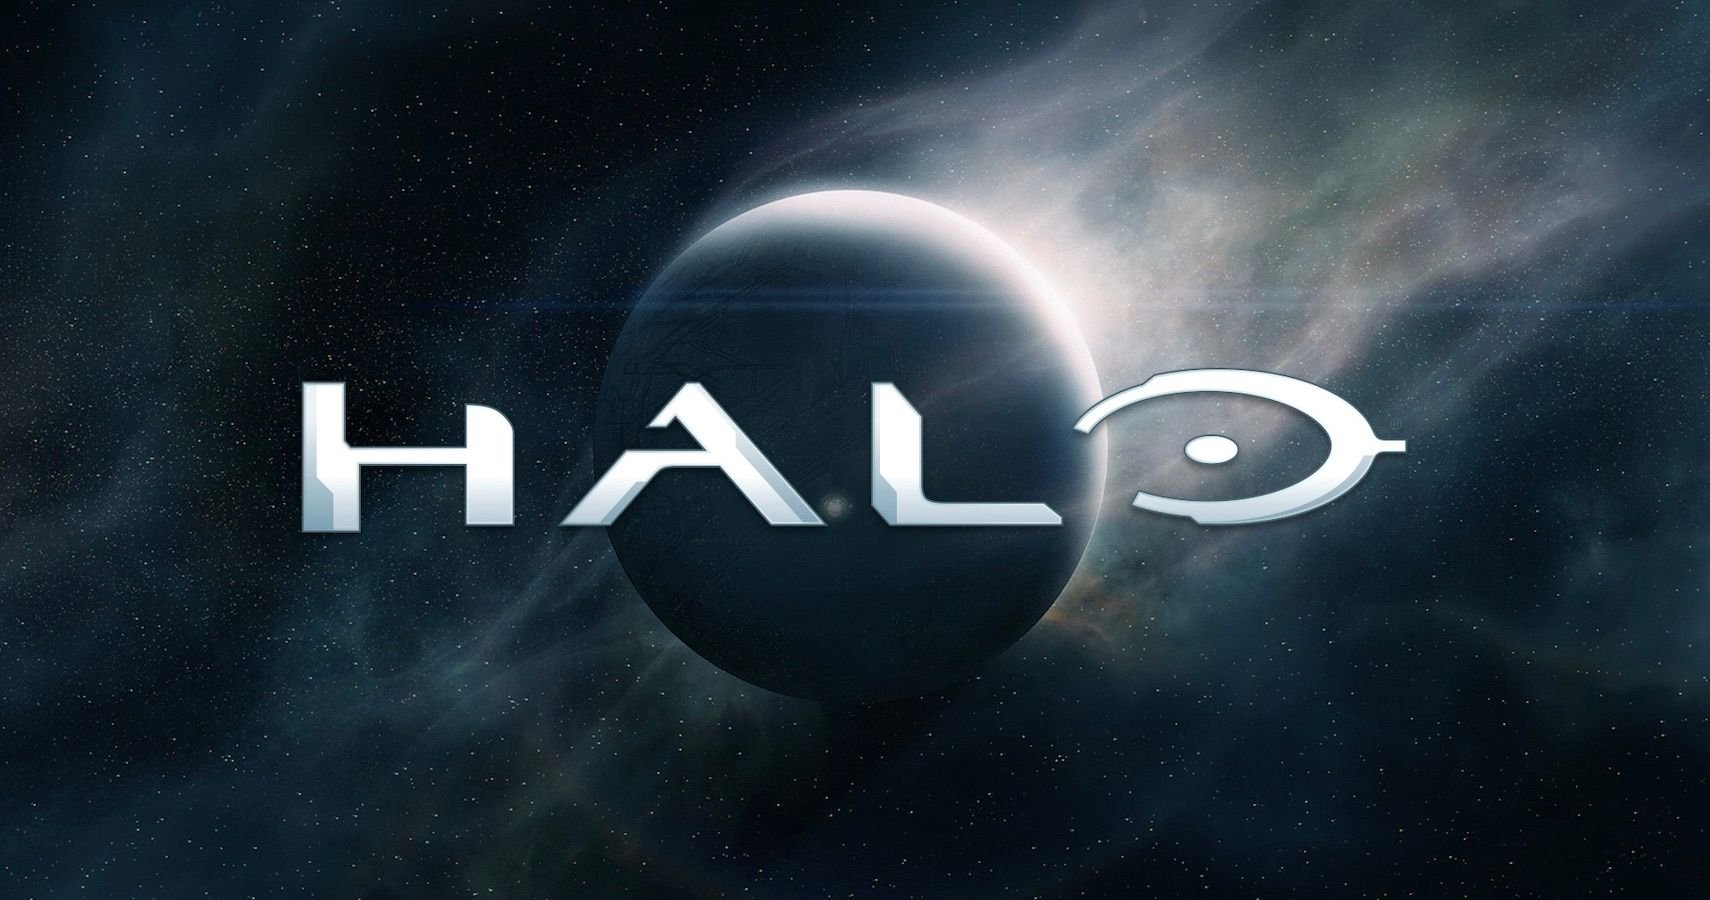 Halo TV Series Scheduled To Debut In Early 2022